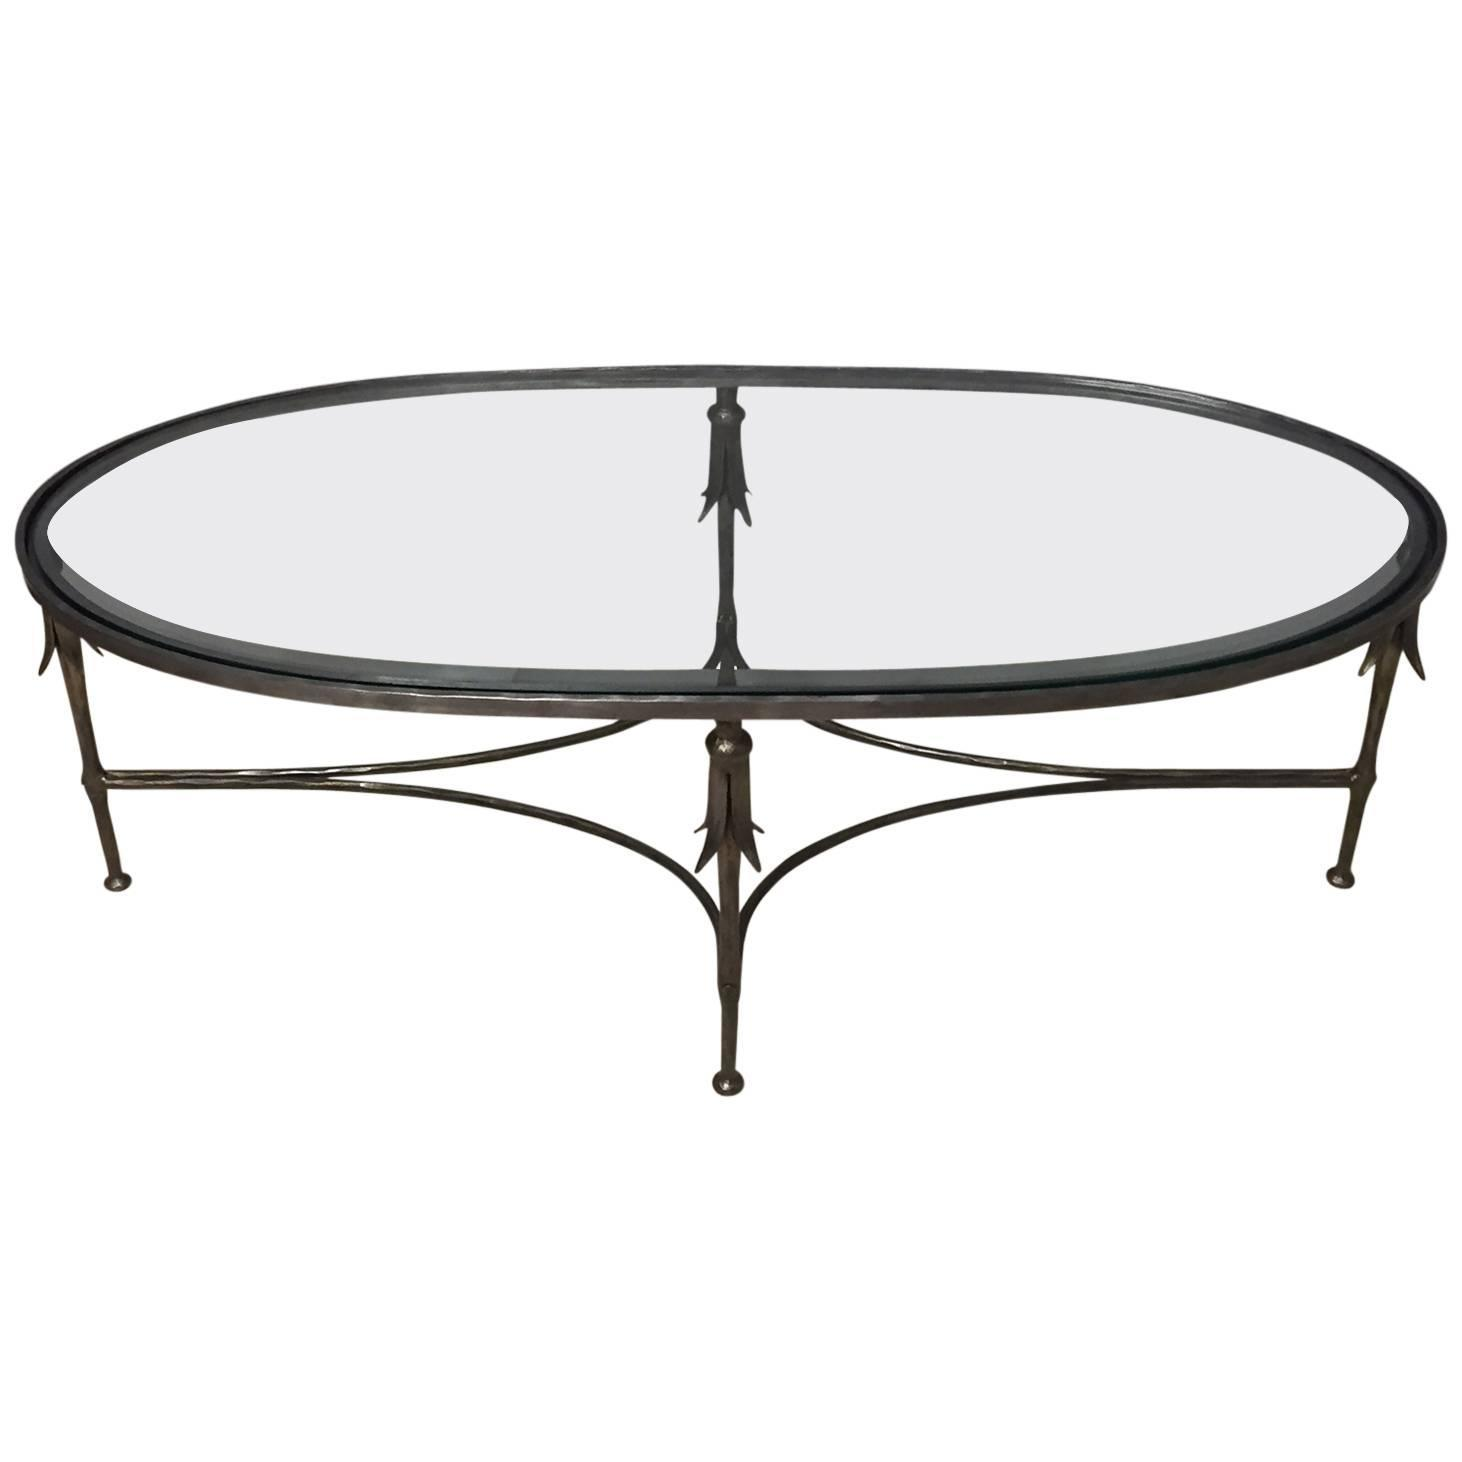 Elegant french hand wrought iron and glass oblong coffee table at 1stdibs Wrought iron coffee tables